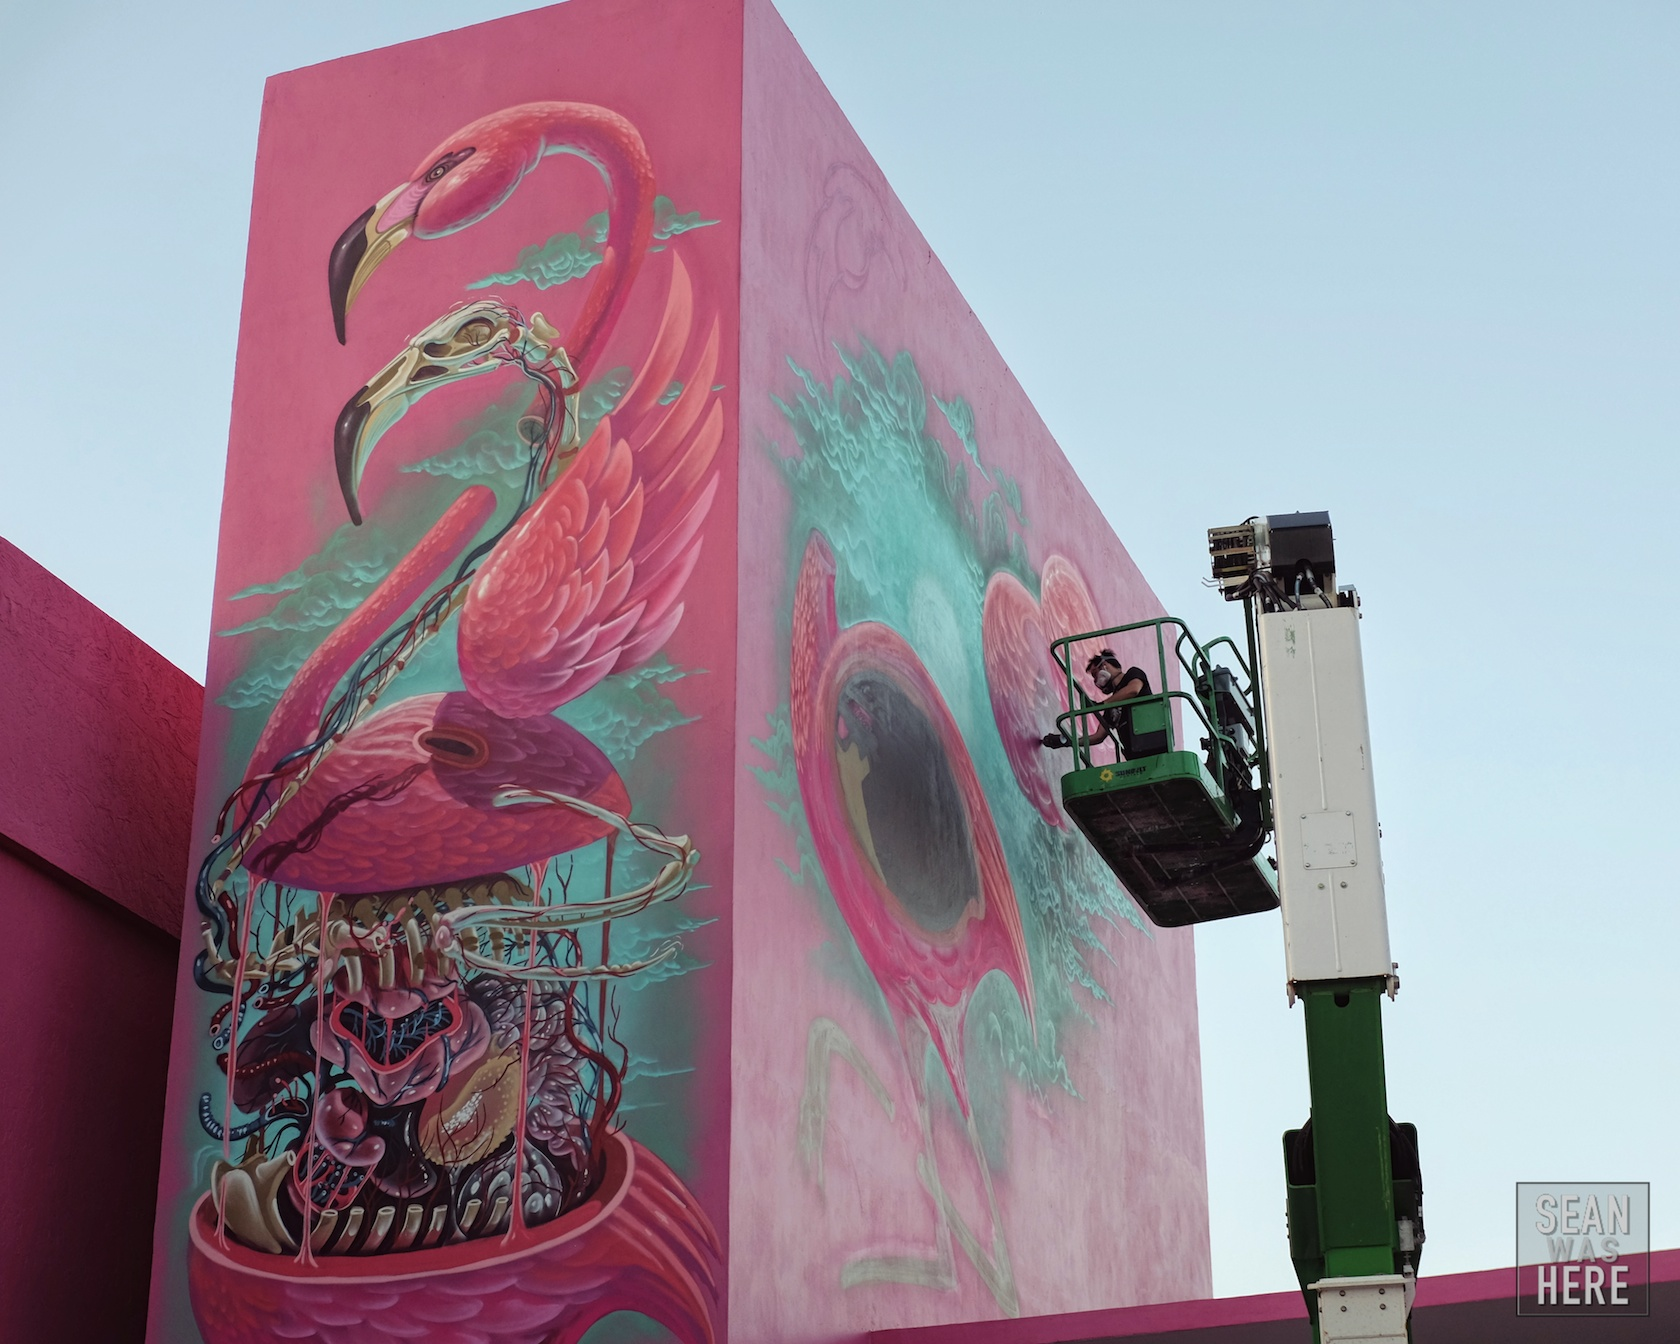 Austrian artist Nychos at work on a giant mural on Miami Ad School's brand new location in Wynwood (moving from South Beach). Wynwood Miami